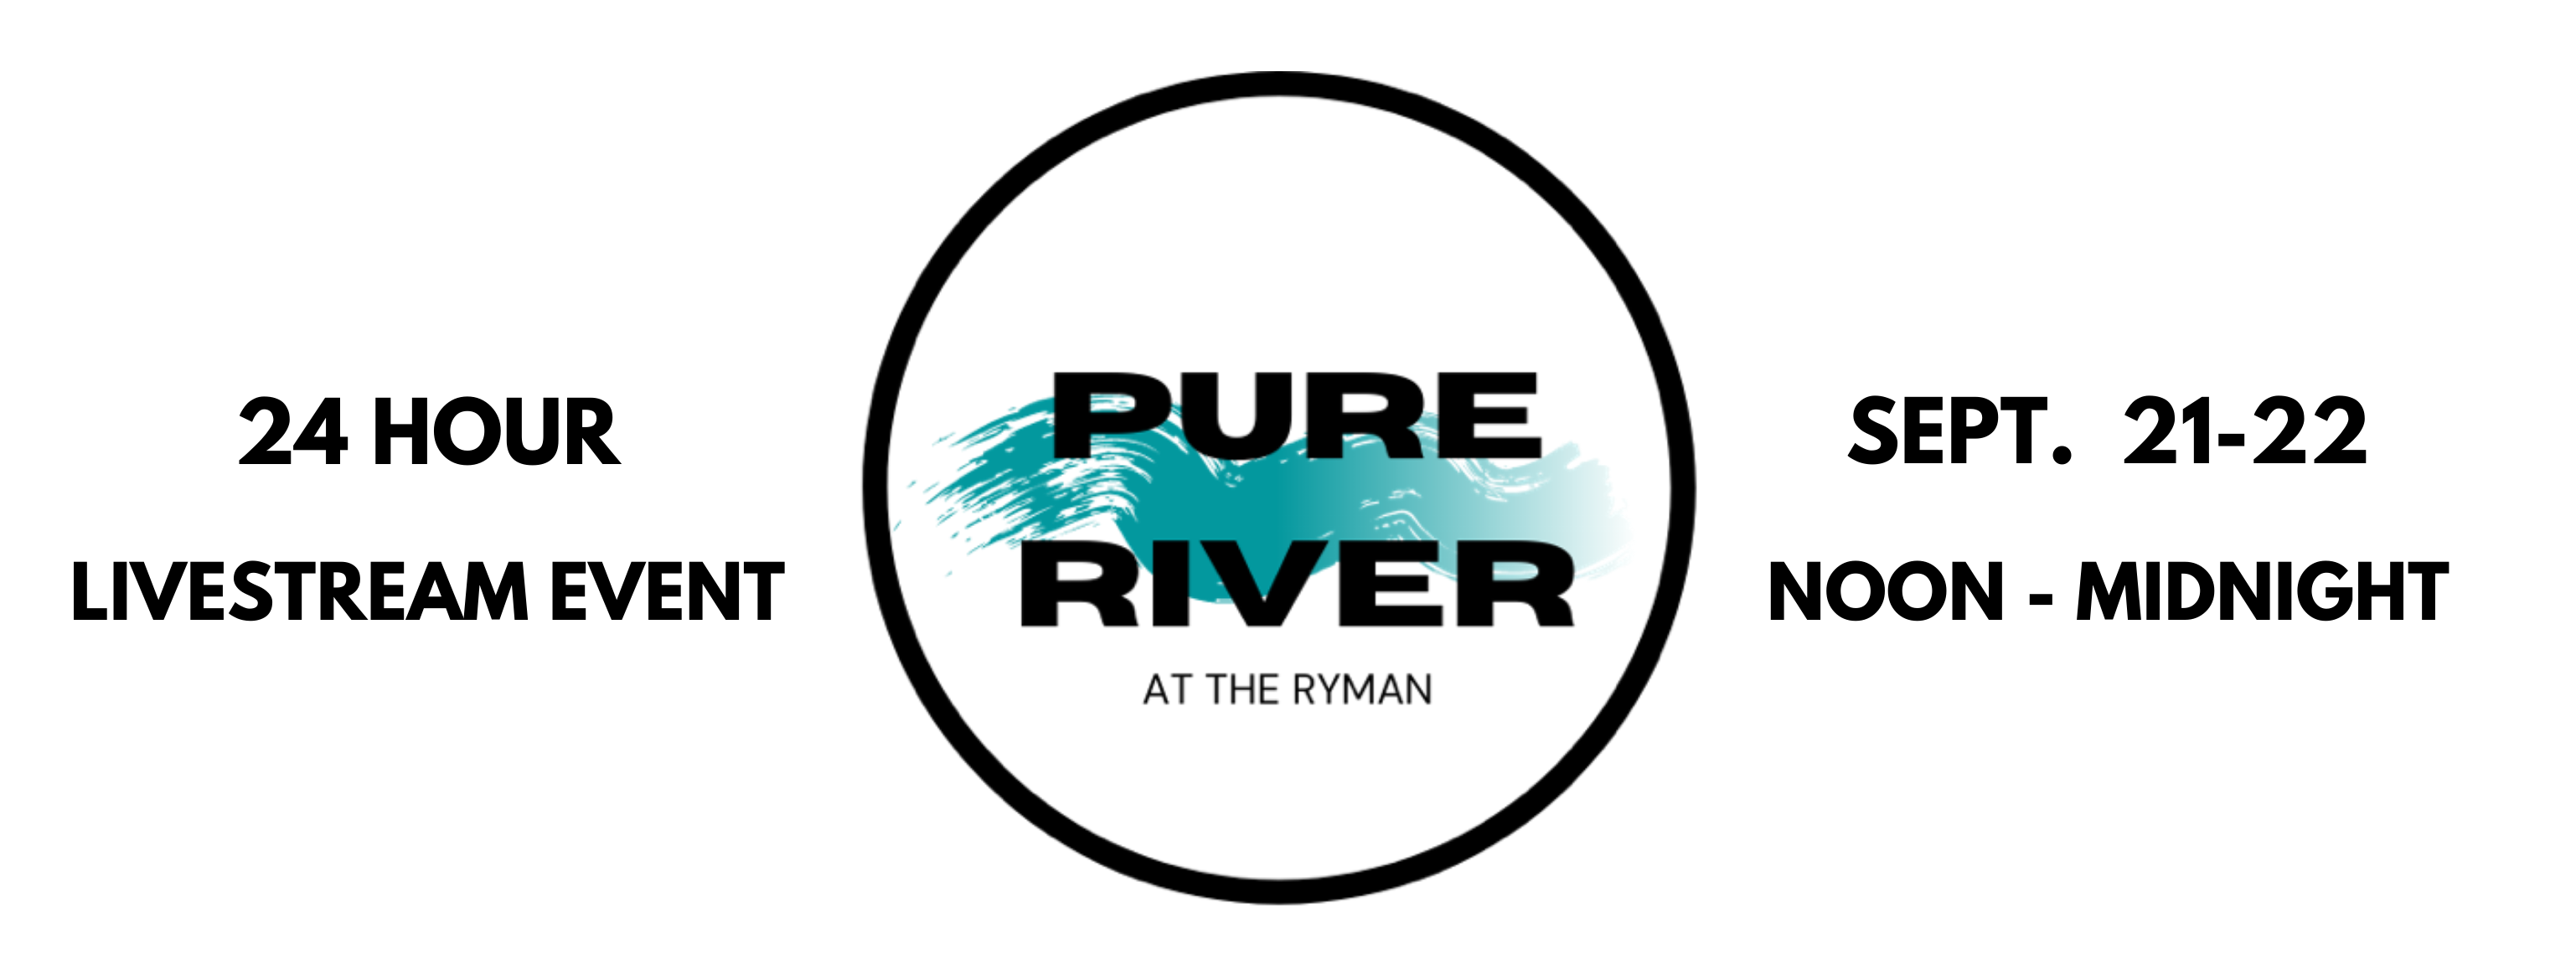 """Pure River at the Ryman"" September 21-22"